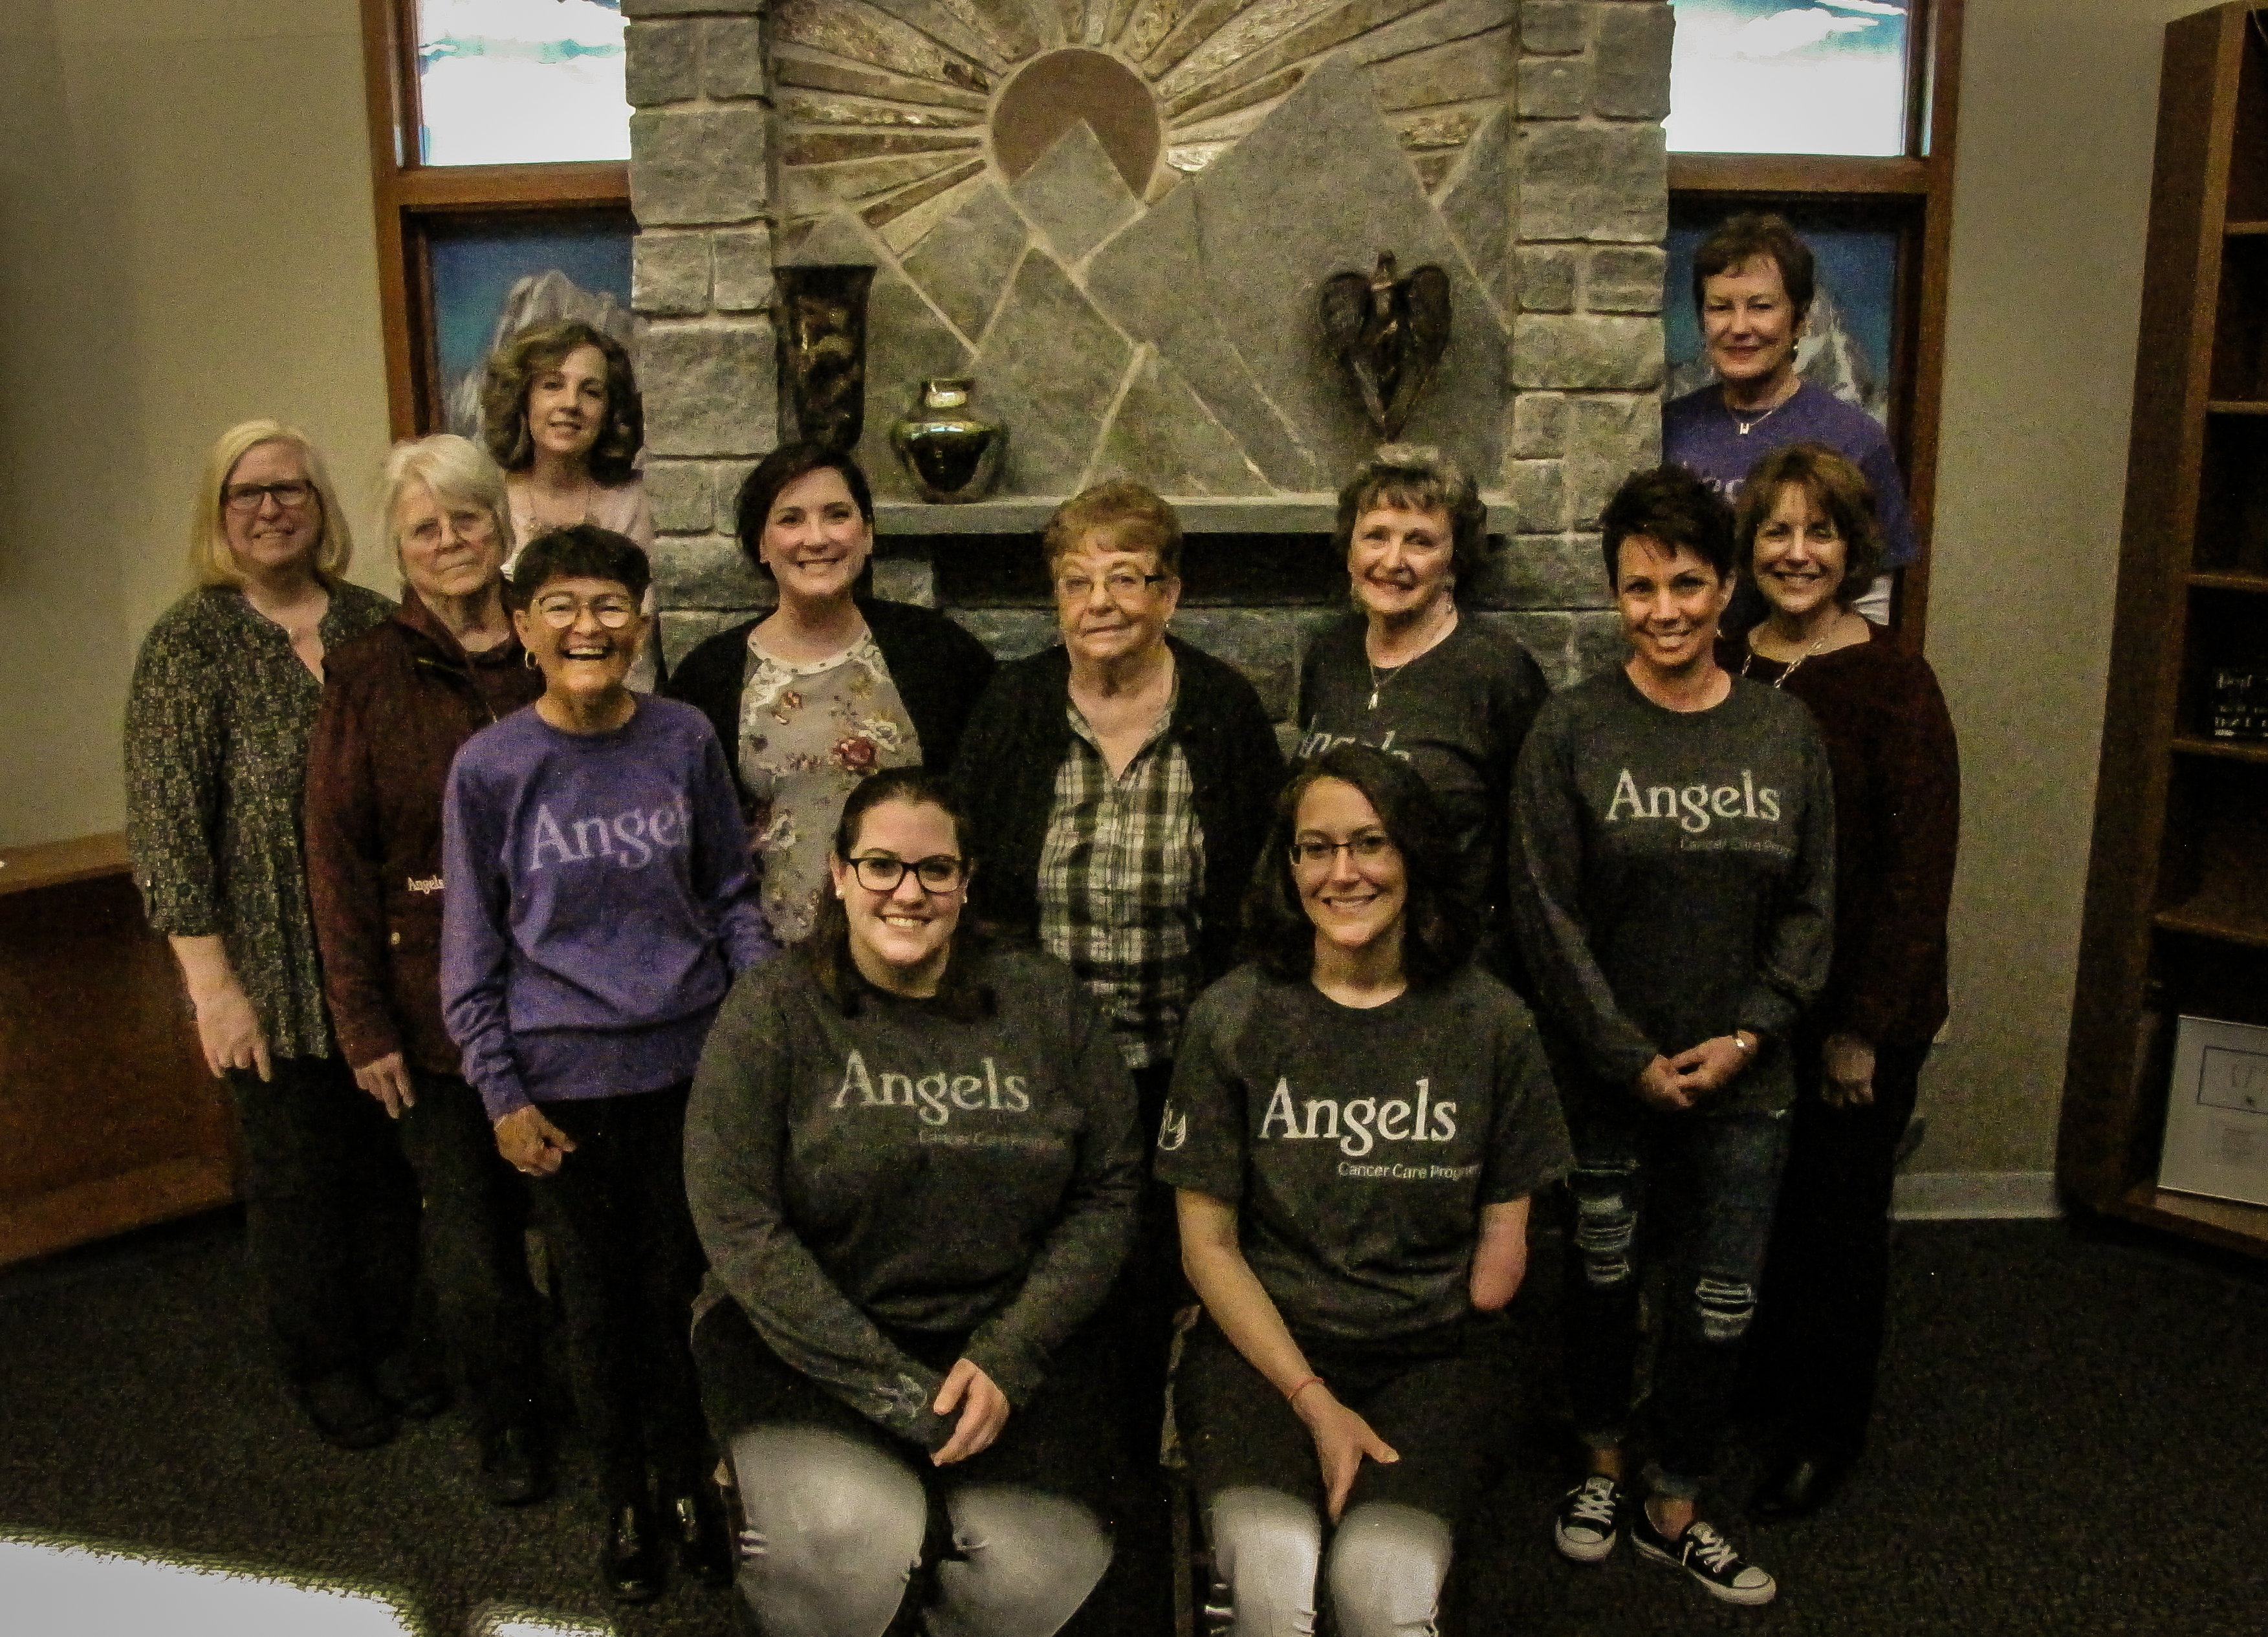 Angels Group Photo